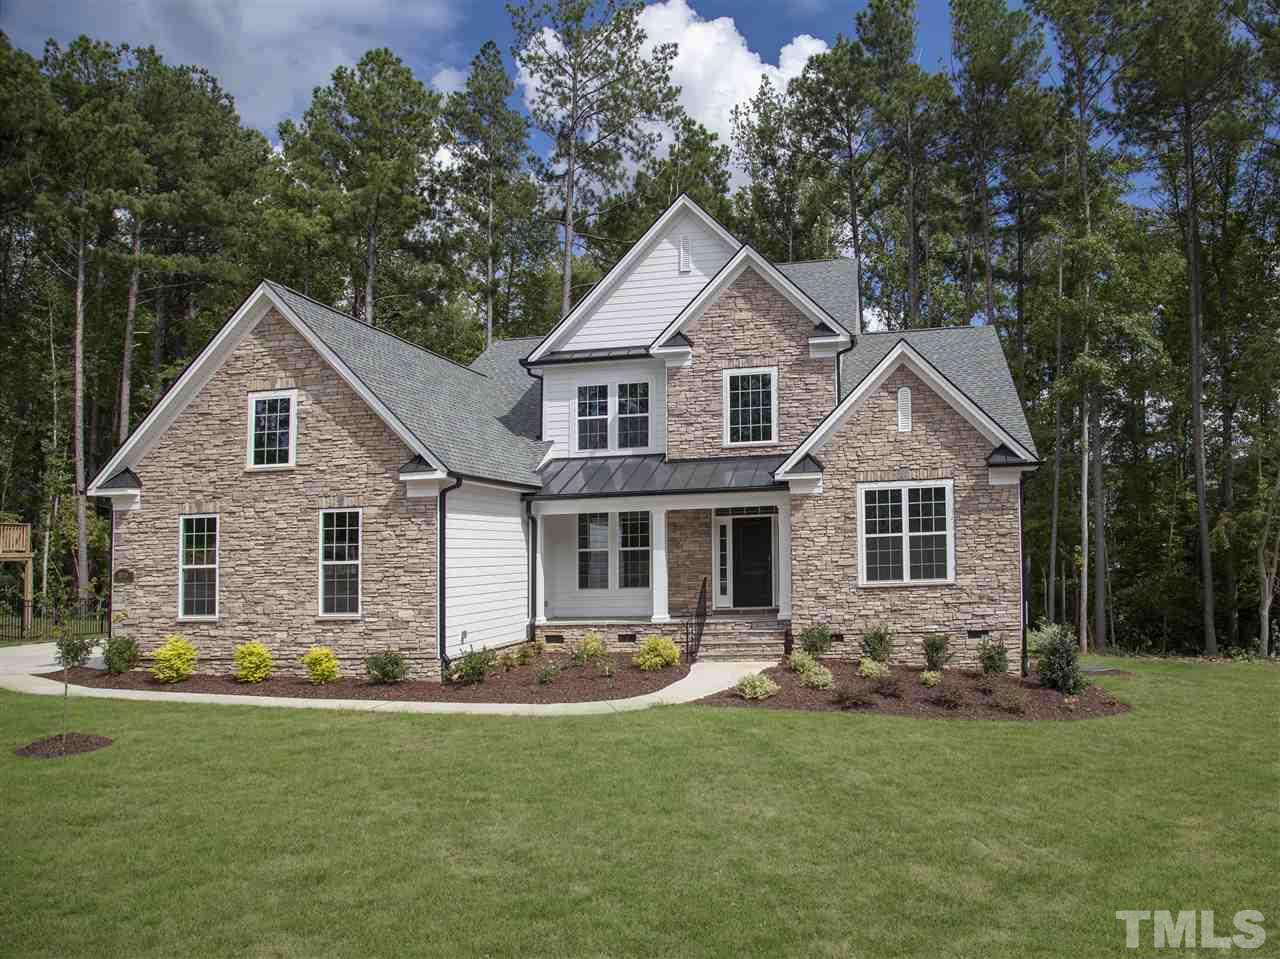 Hasentree | Homes For Sale in Raleigh NC on